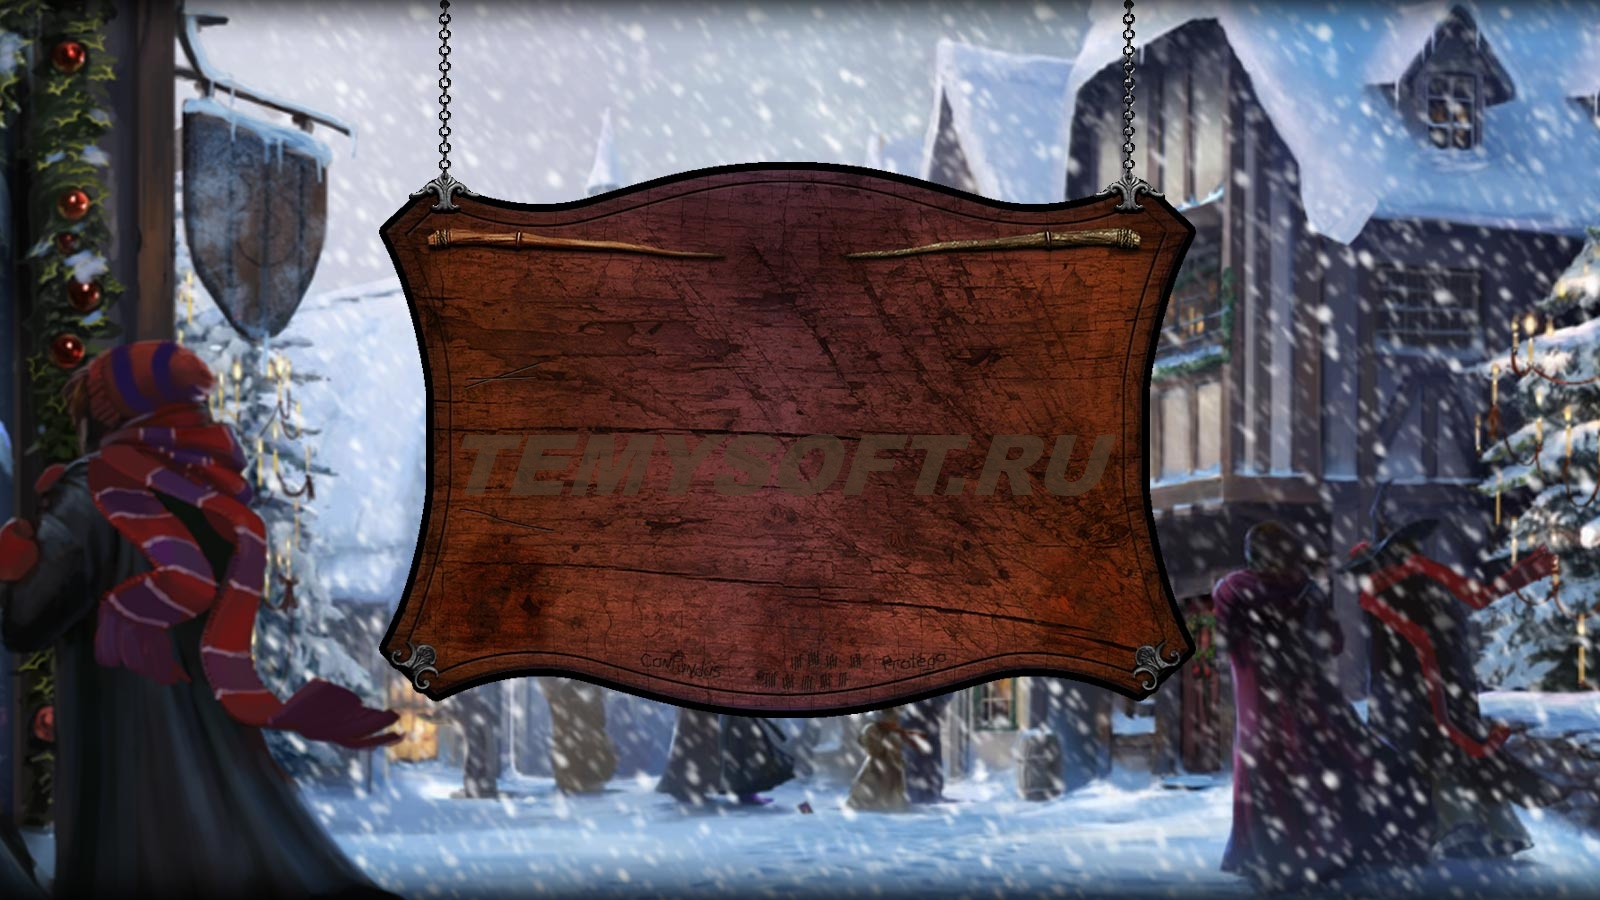 Pottermore logon screen hogsmeade at christmas by xxtayce